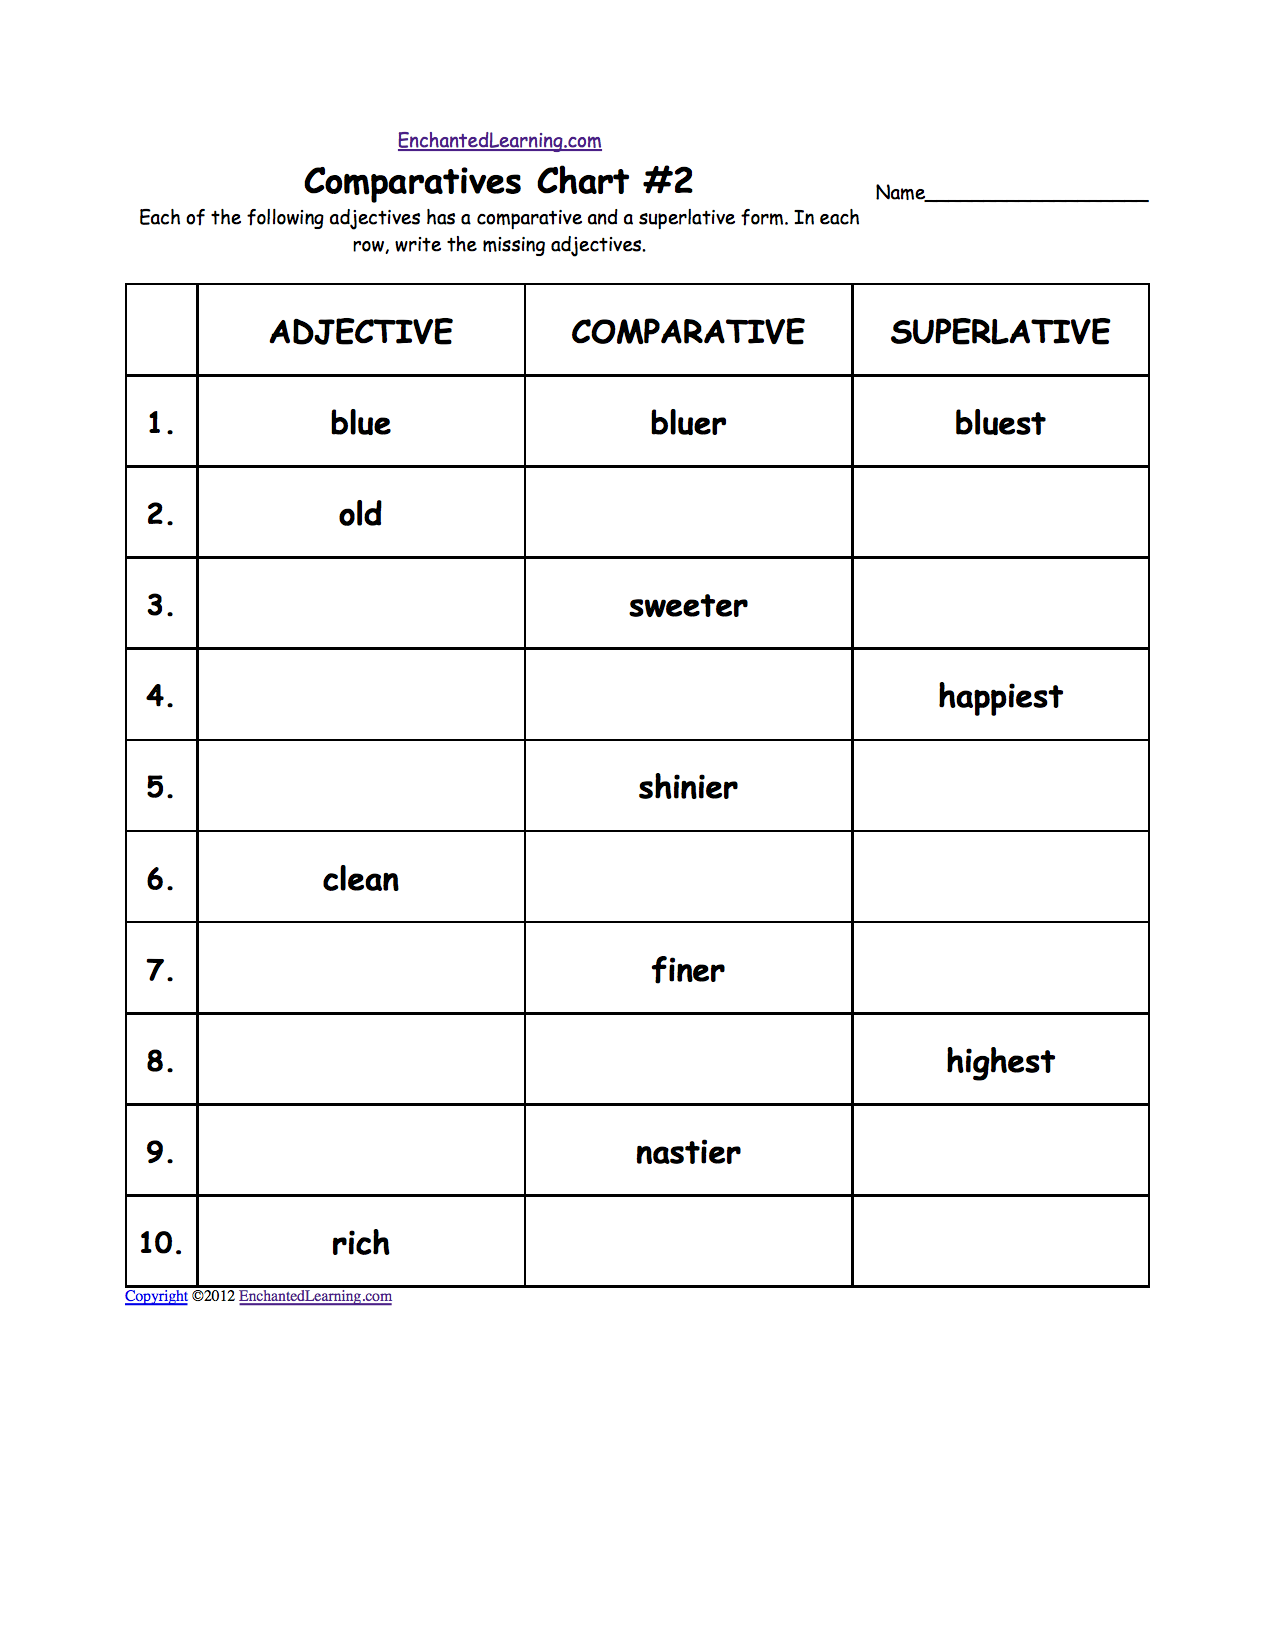 worksheet Comparative Adjectives Worksheets comparative and superlative adjectives worksheet printout each of the following has a form in row write missing blue ol